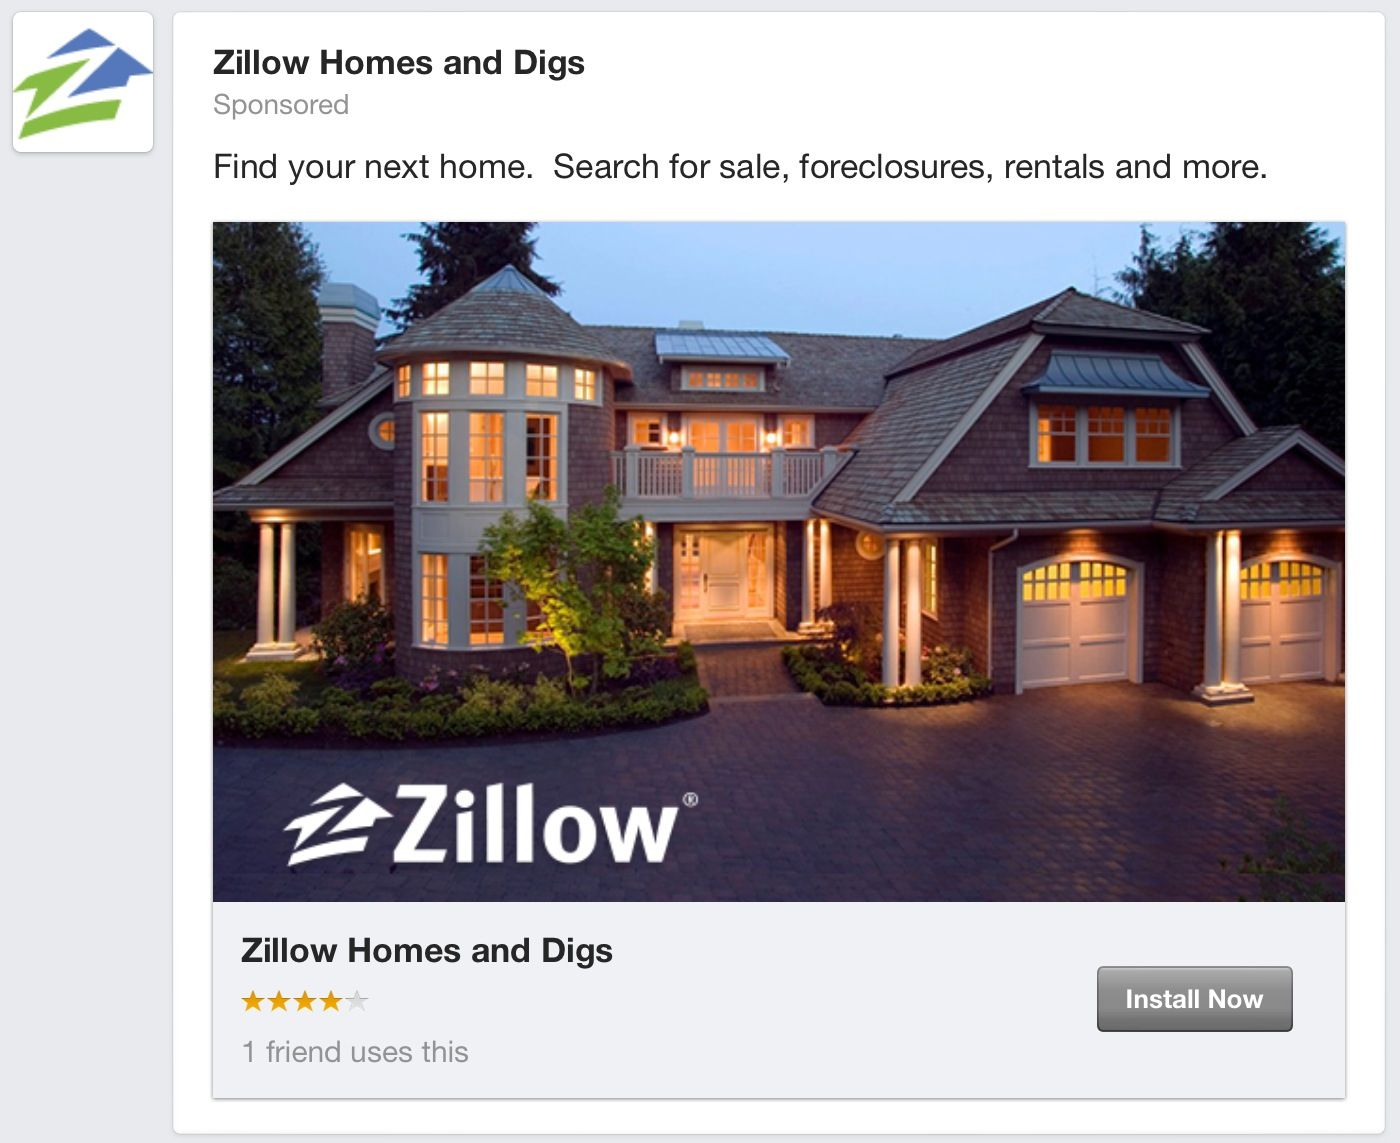 Craftsman homes for american dream builders fans zillow blog - Explore Nice Houses Modern Houses And More Zillow